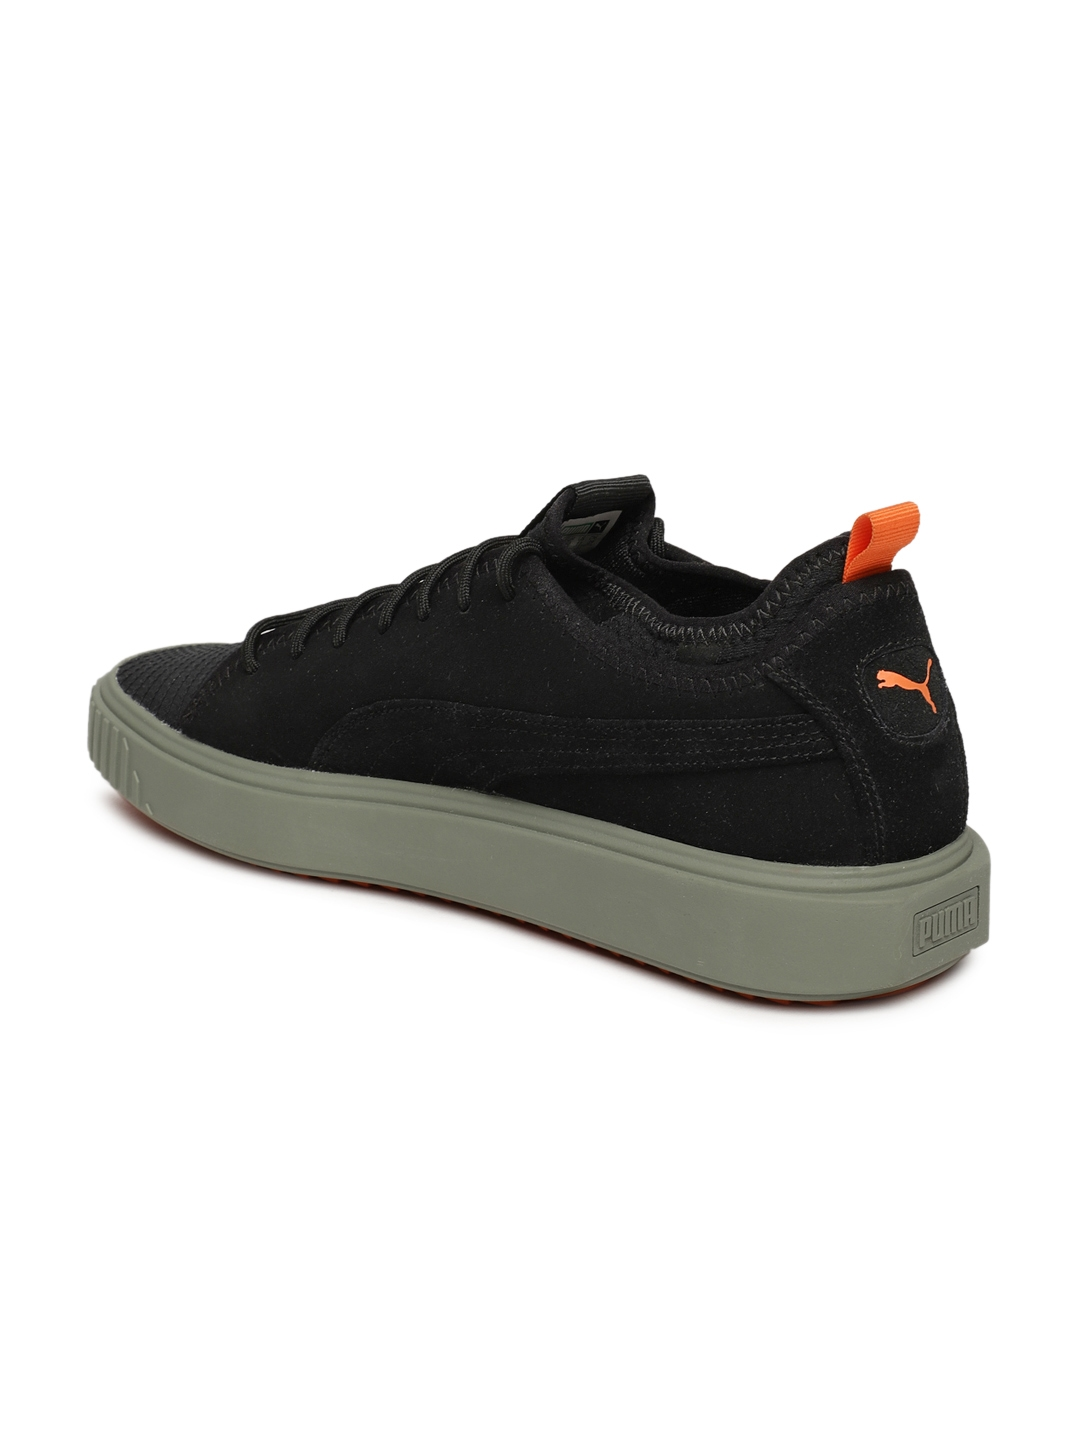 9d9b74f232a205 Buy Puma Men Black Breaker Mesh FOF Suede Casual Shoes - Casual ...